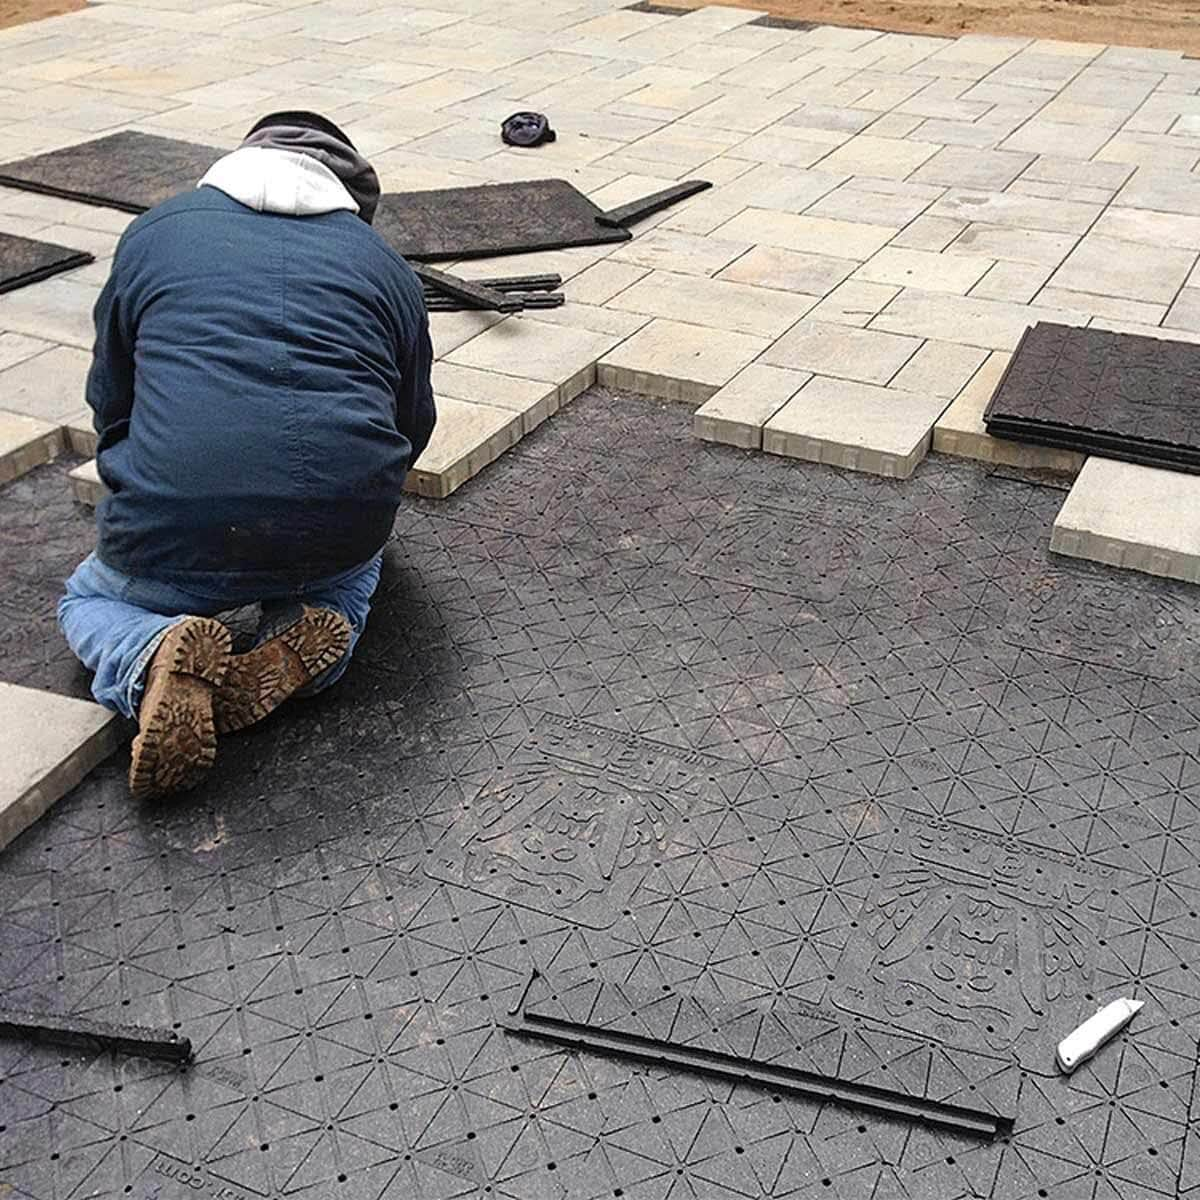 Install Some Paver Edging and Finalize It by Installing the Pavers